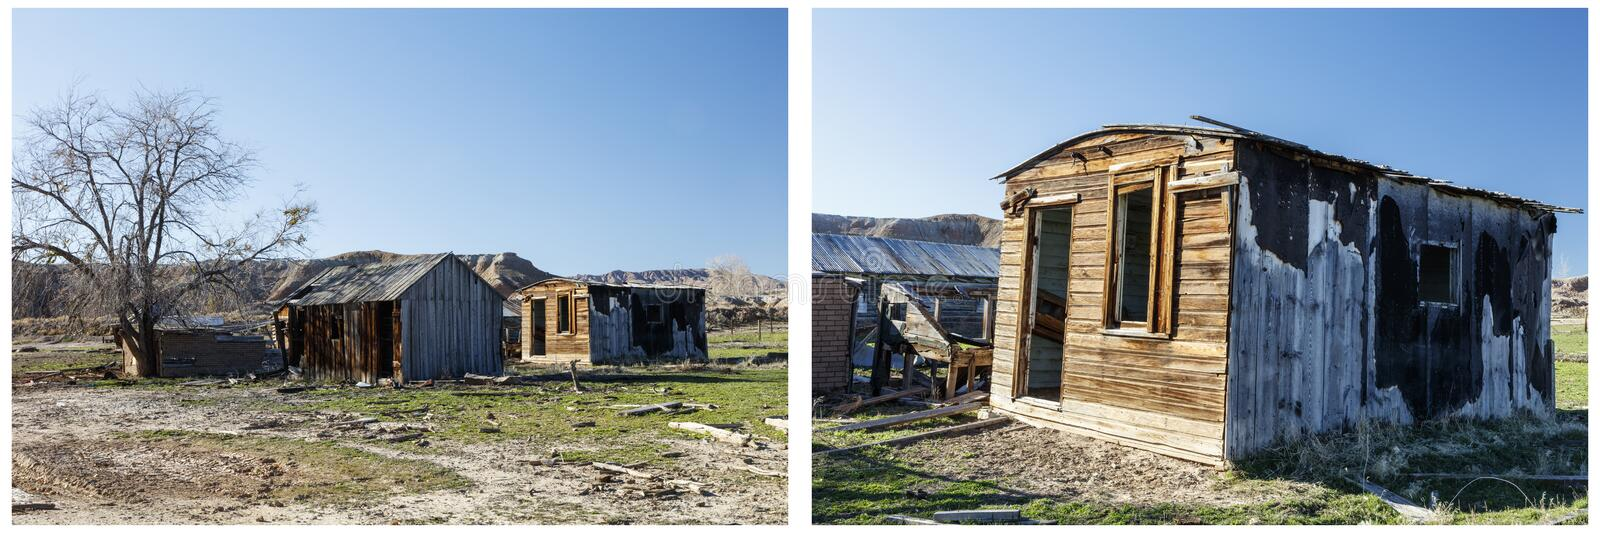 Old grungy homestead buildings collage royalty free stock images